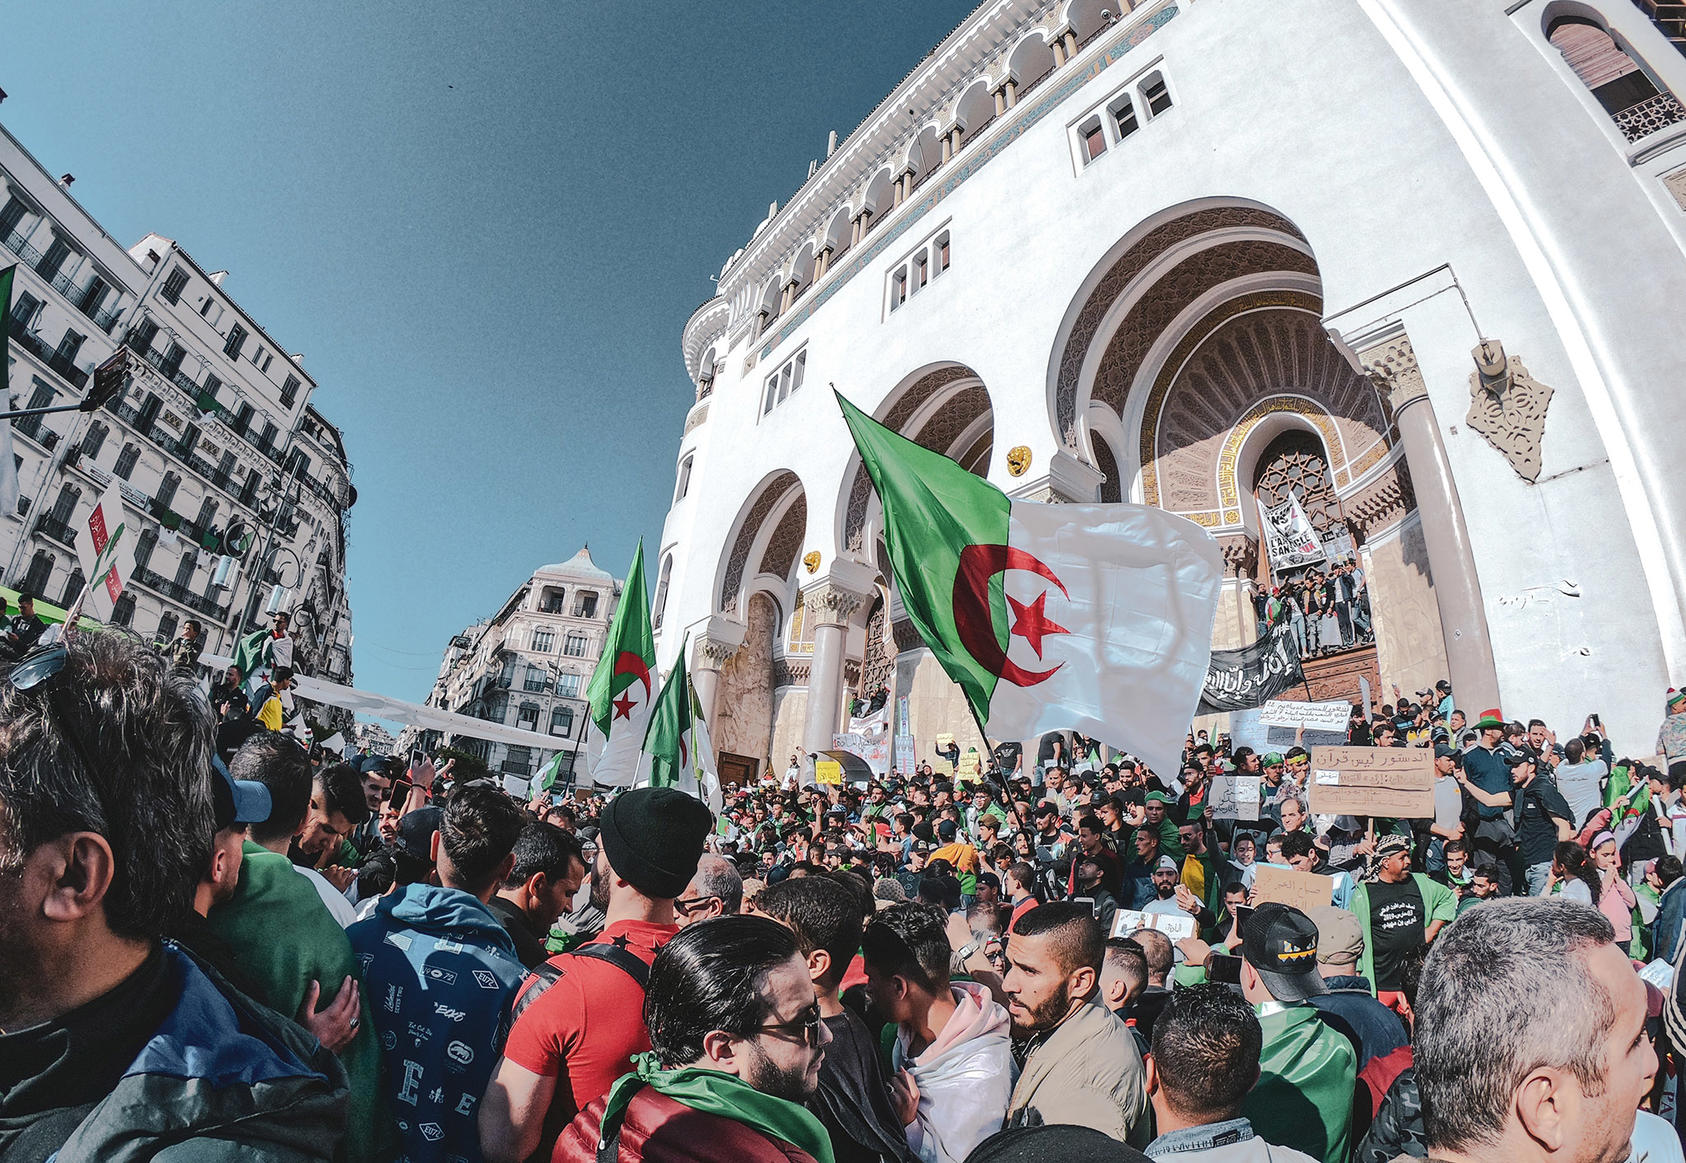 Protesters gather in Alger Centre, Algeria to pressure the army to overhaul the country's political system. (Abdelfatah Cezayirli)